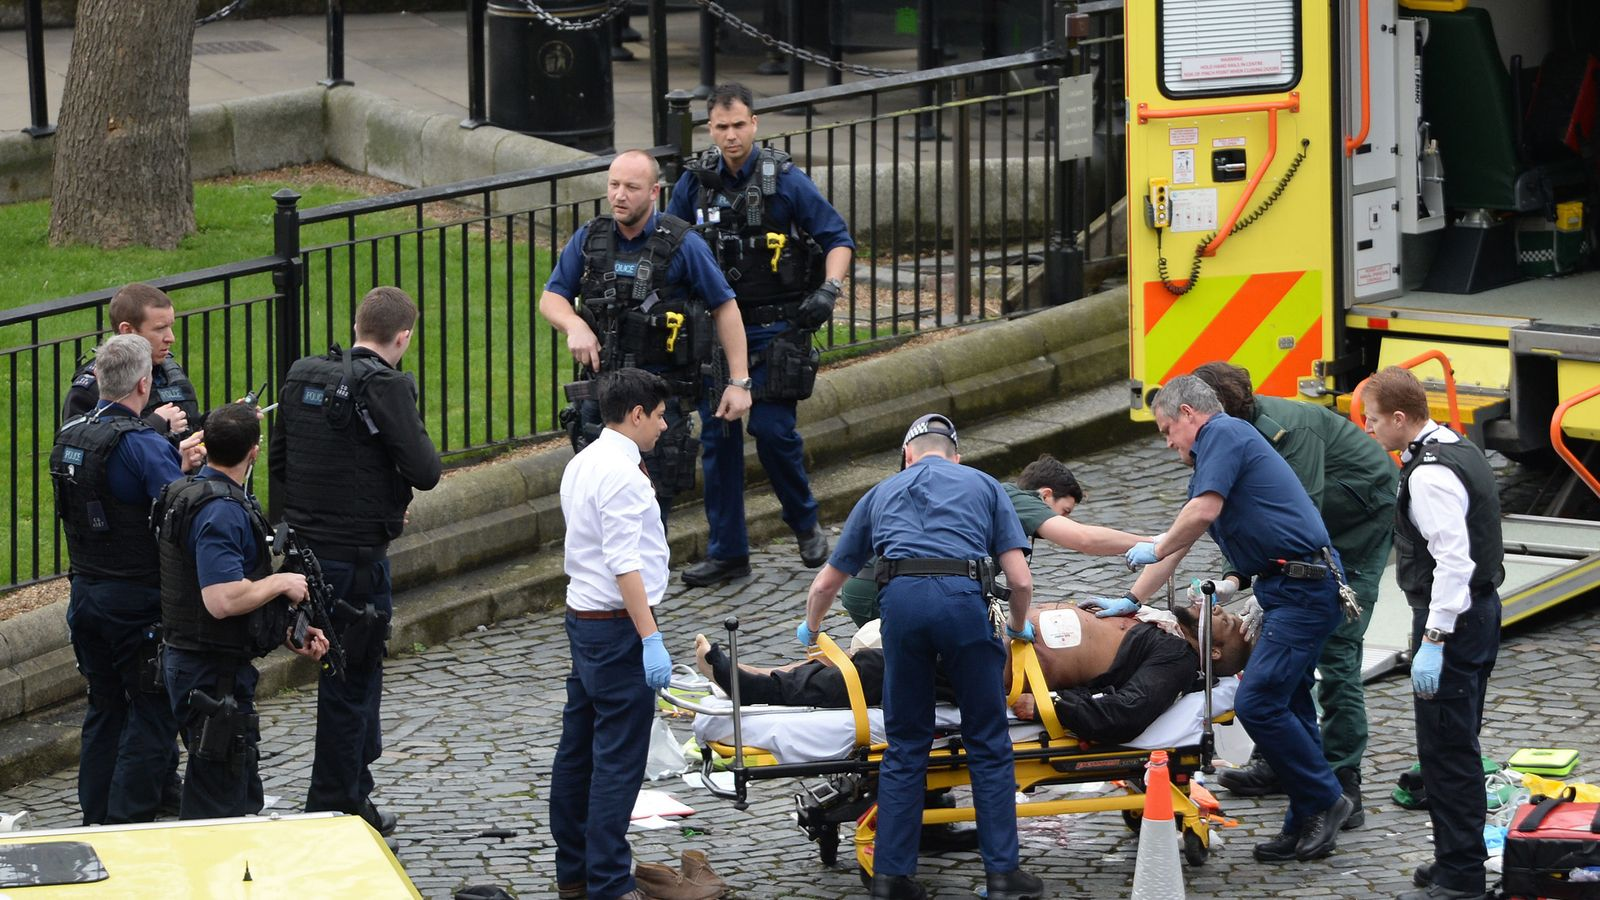 london attack what we know so far bbc news 4